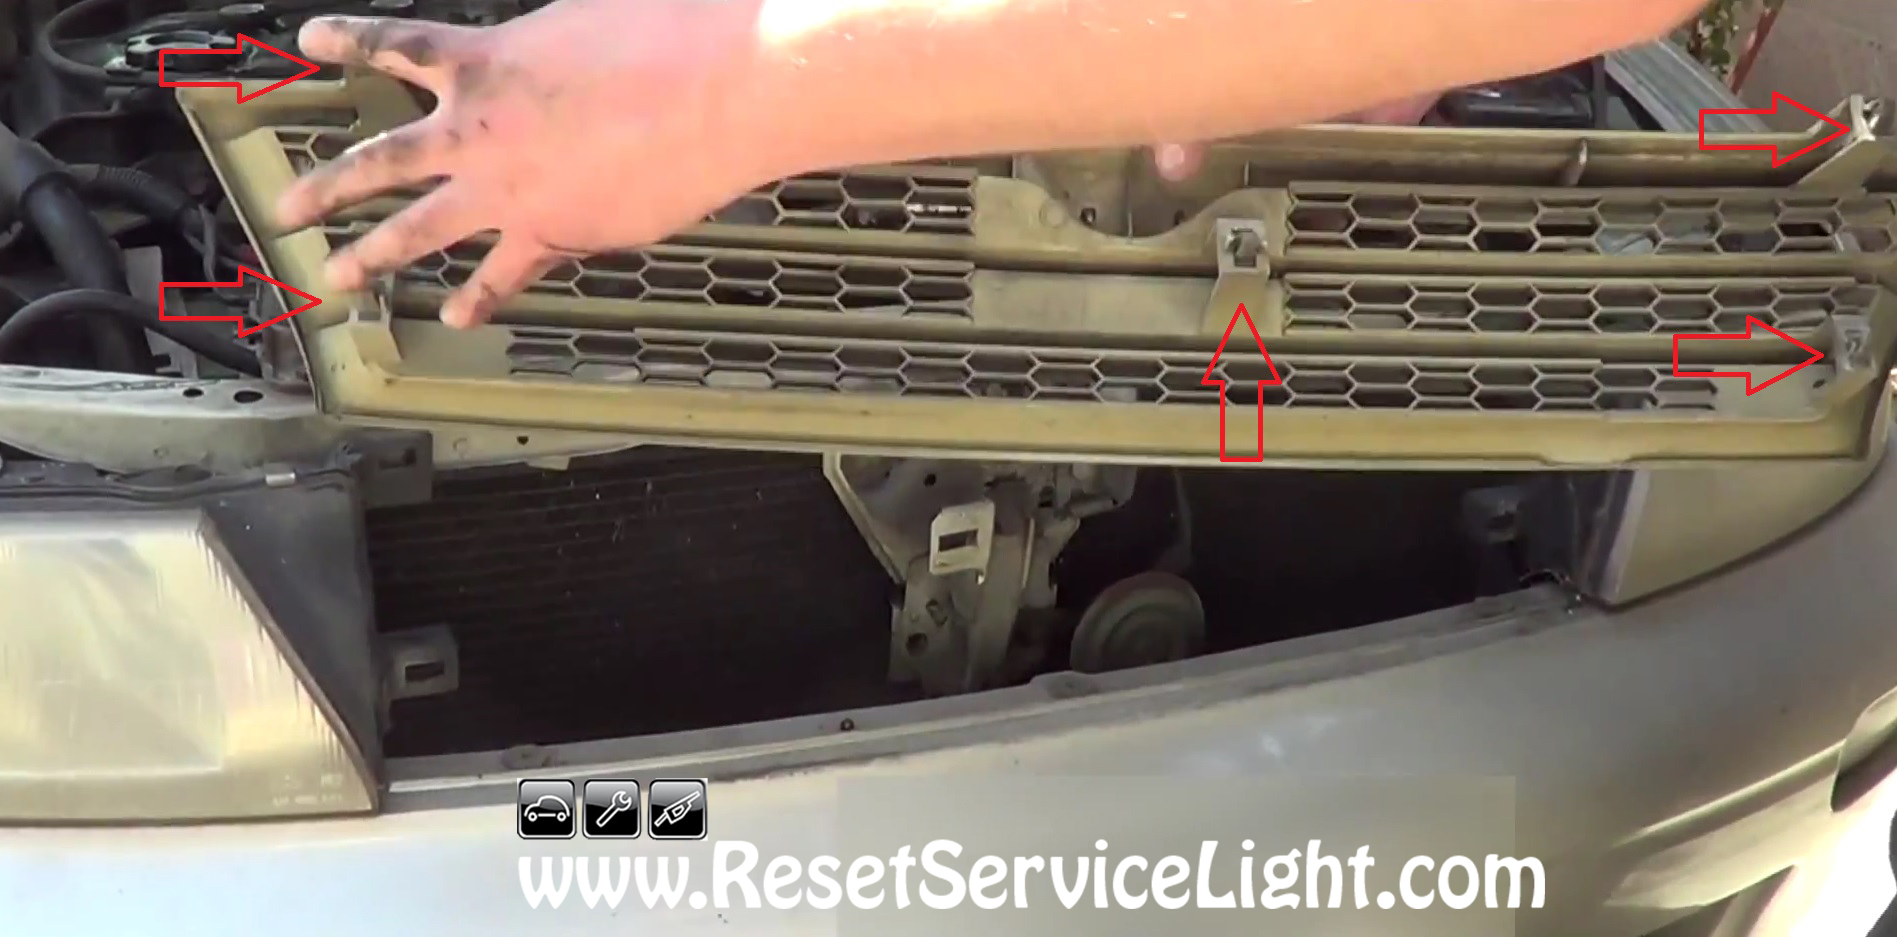 Reset Oil Service Light Nissan Altima Reset Service Autos Post